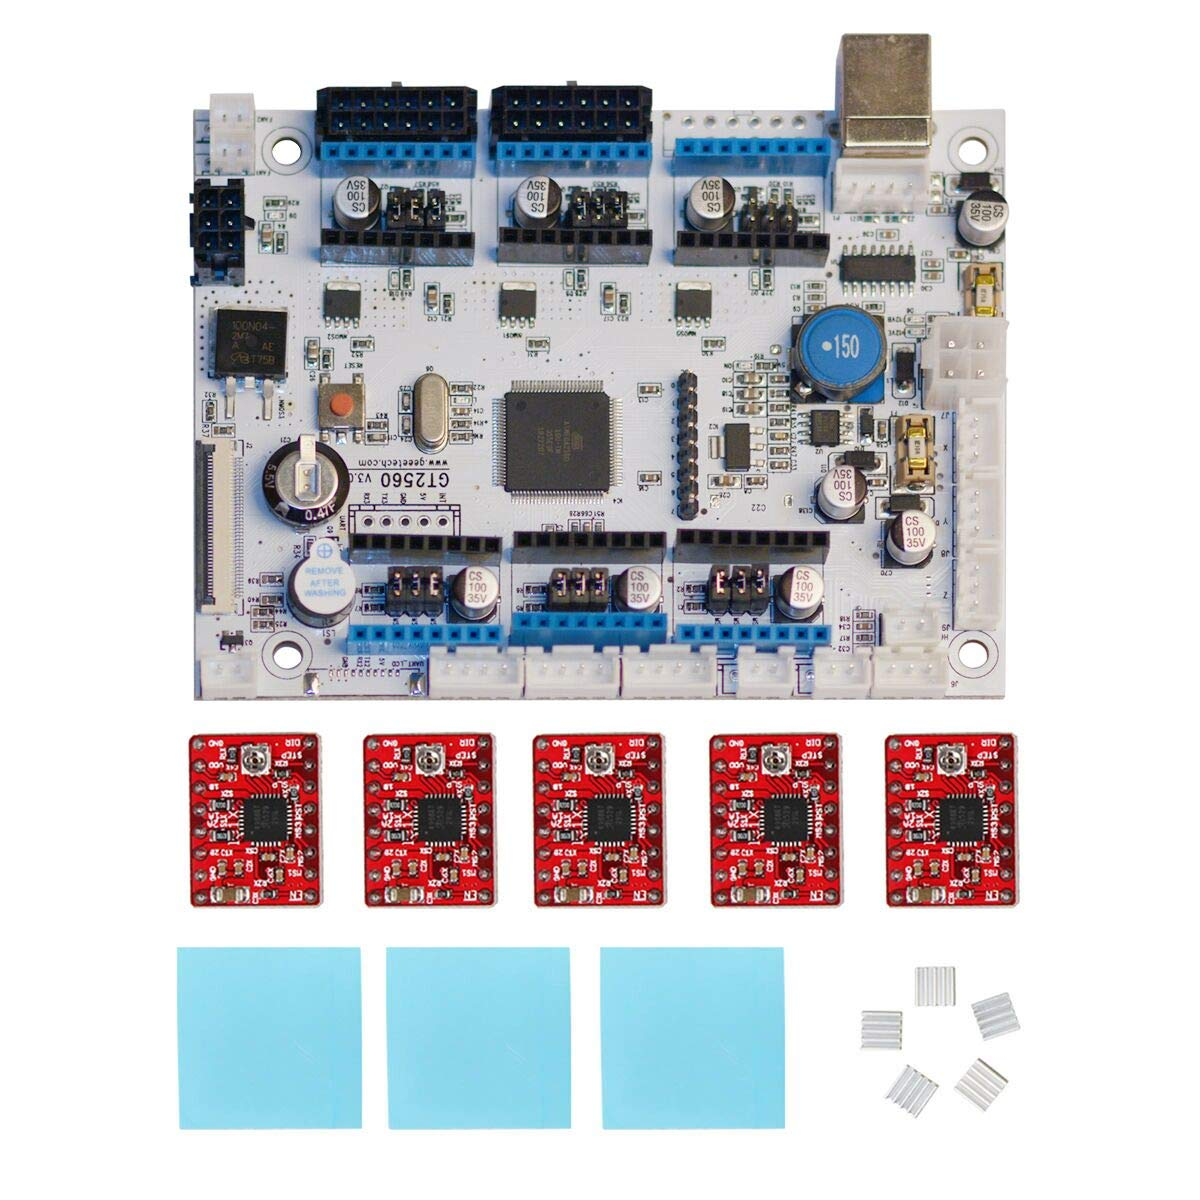 Geeetech GT2560 V3.0 Control Board Kit with 5 Pcs A4988 Stepper Motor Drivers, Supporting Filament Runout Detector and Auto Leveling Sensor, Compatible with Geeetech A10M, A20M Mix-Color Printers.